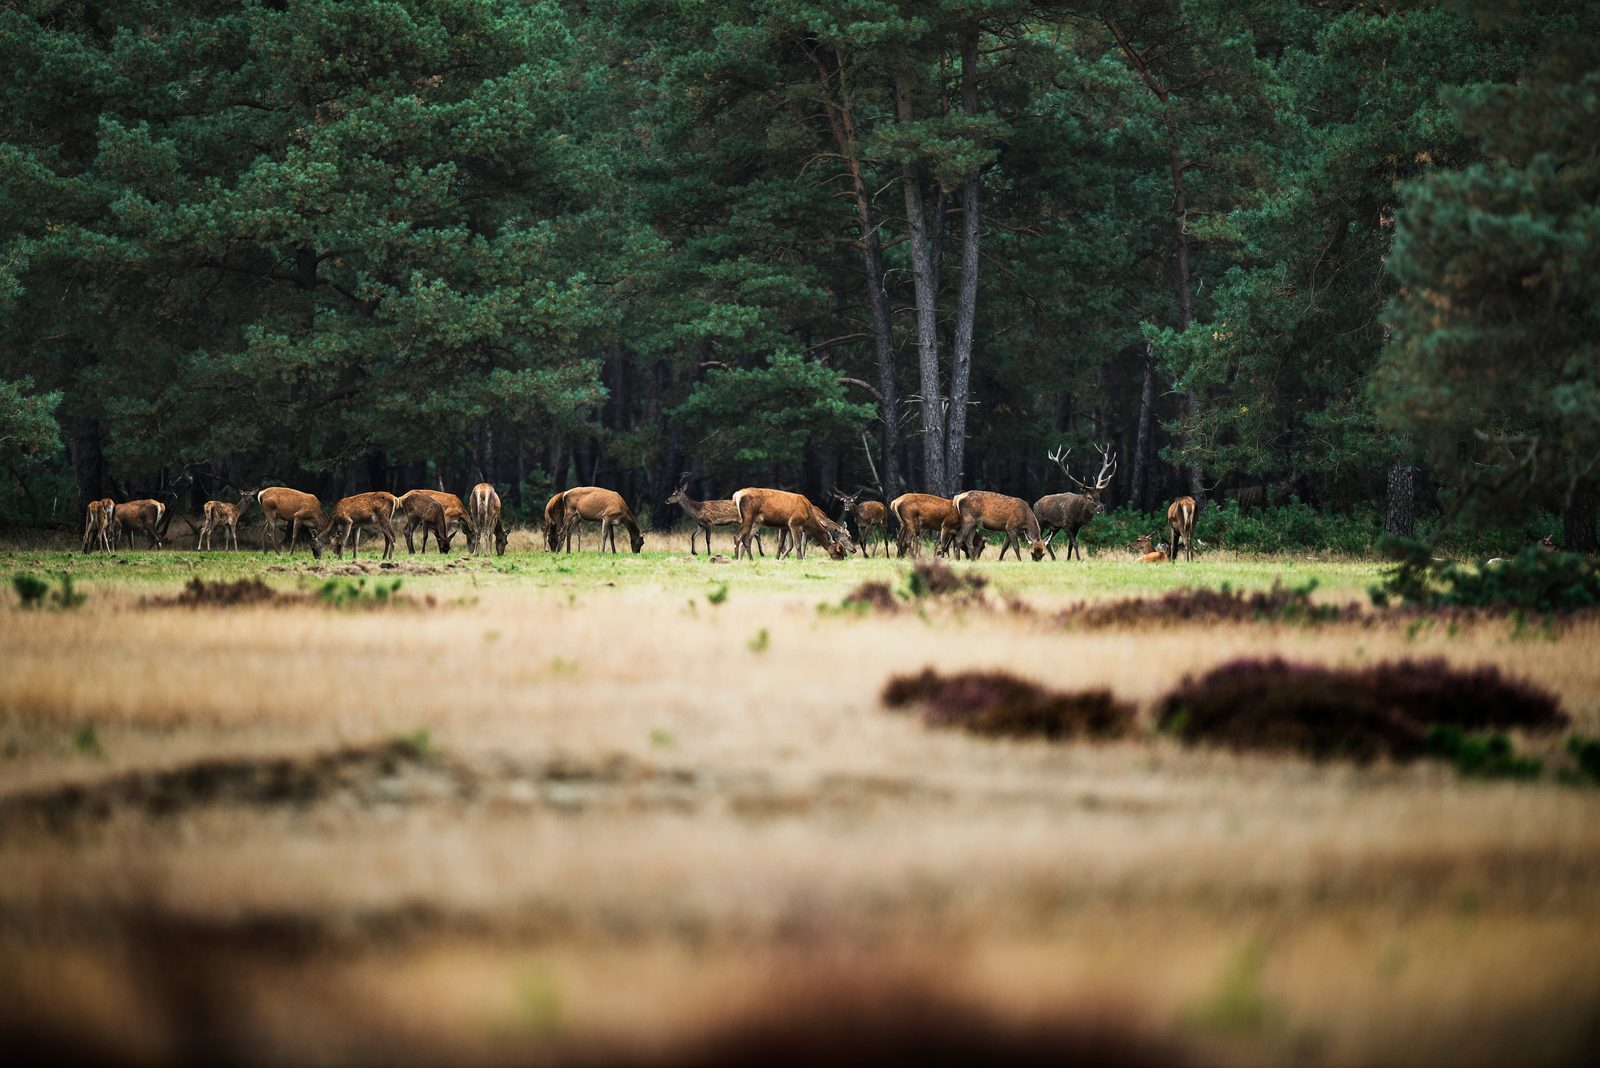 Roe deer in the Veluwe